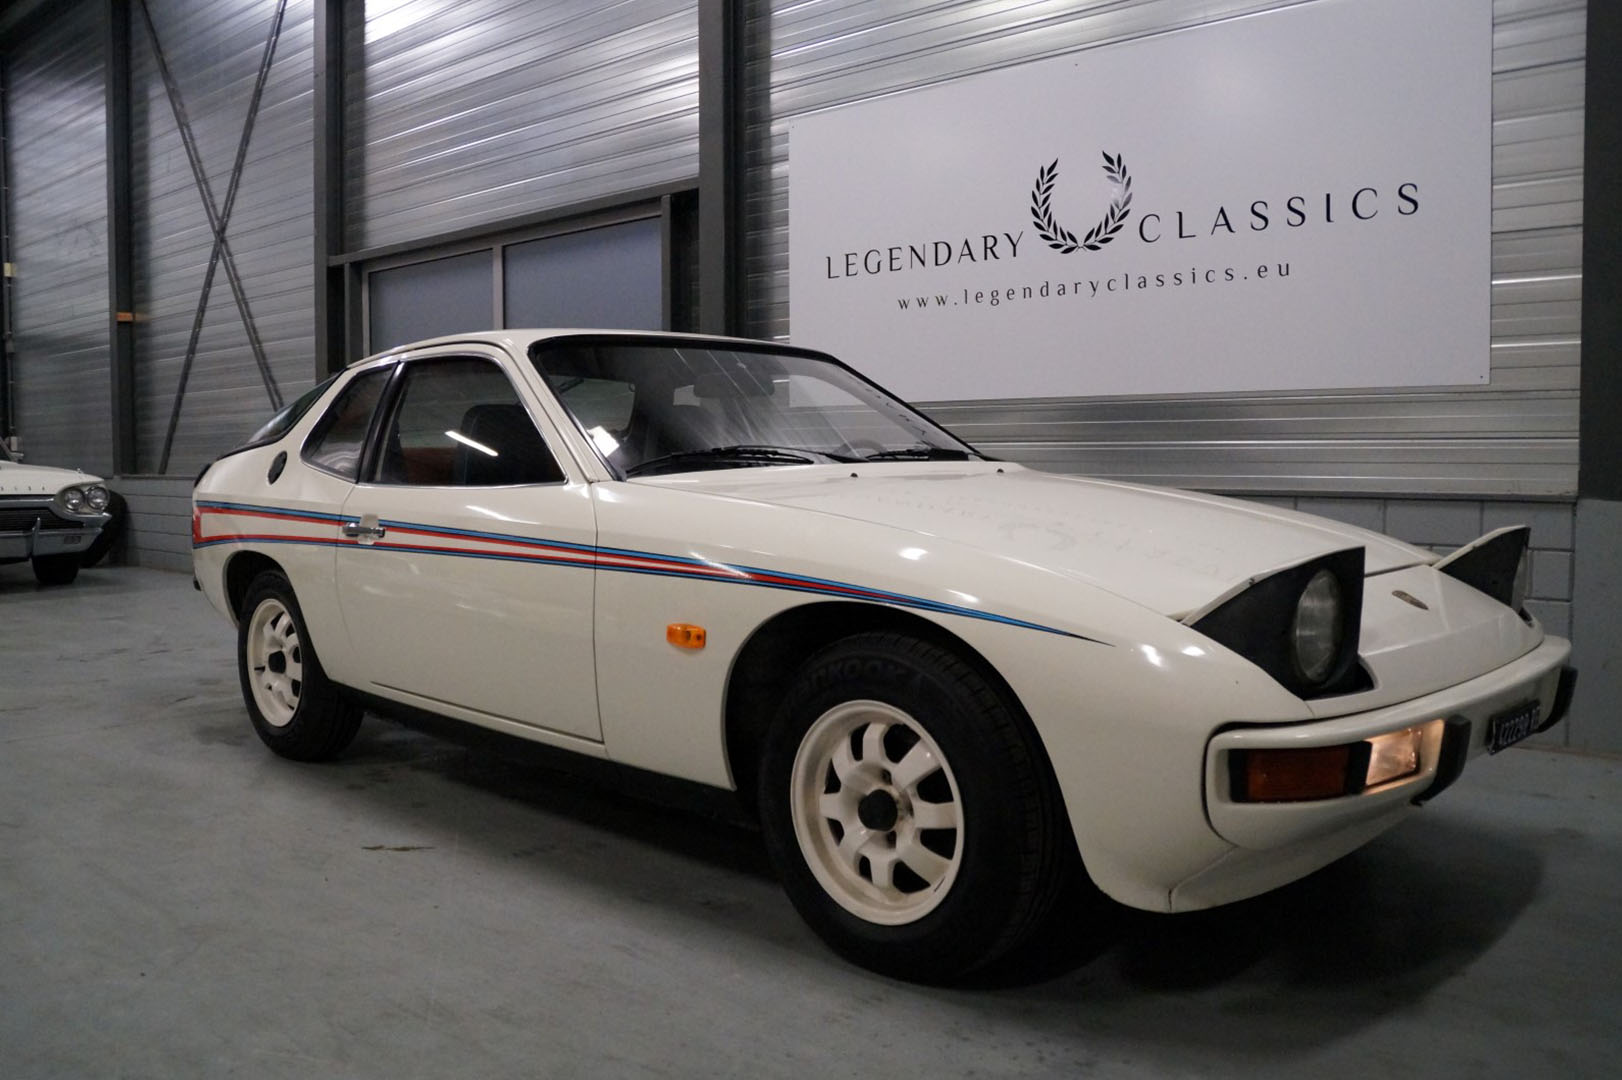 Buy this Porsche 924 Martini   at Legendary Classics (1)